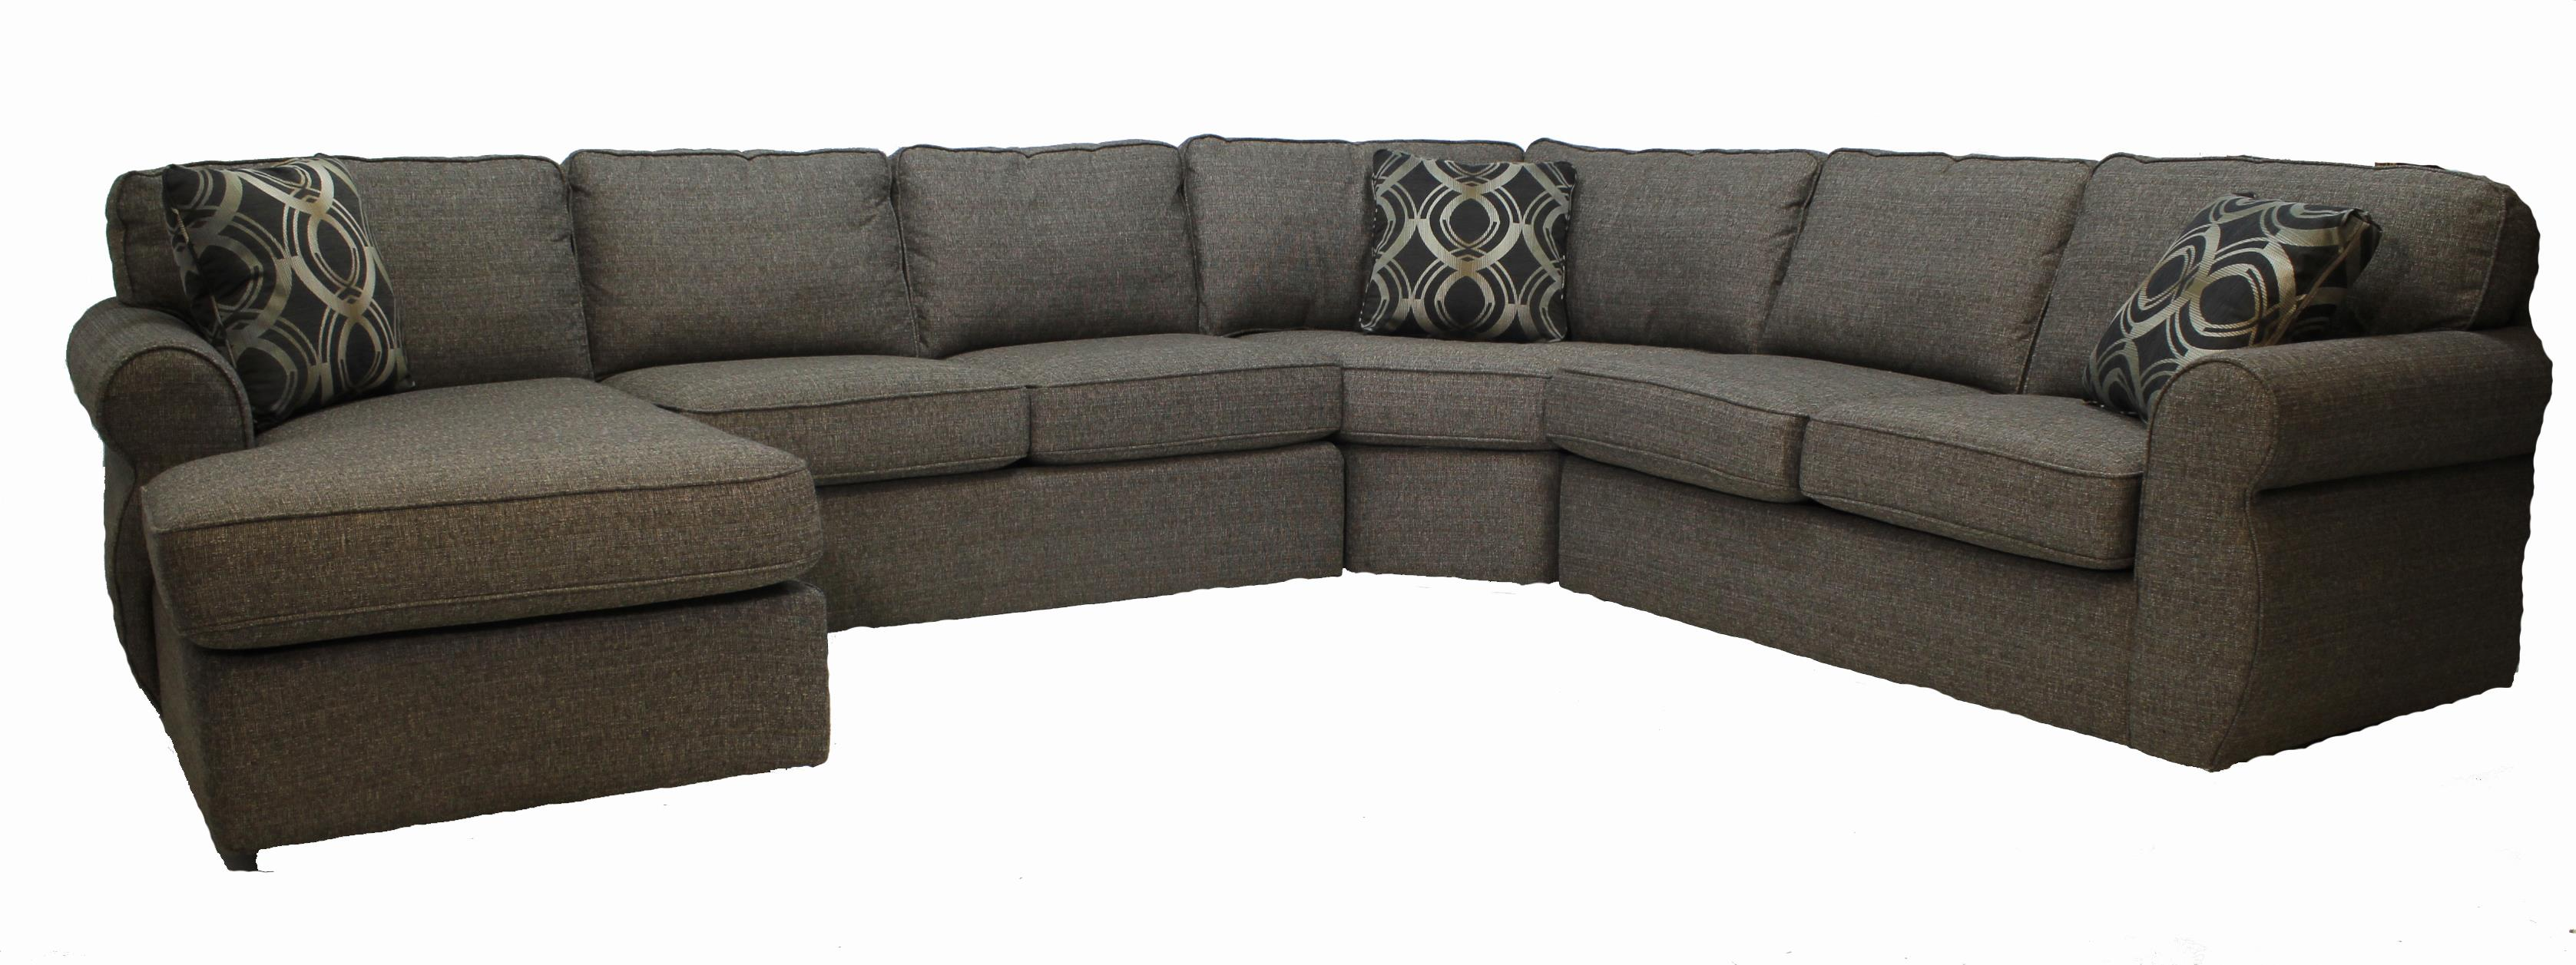 Craftmaster 730114 4-Piece Sectional - Item Number: 730114